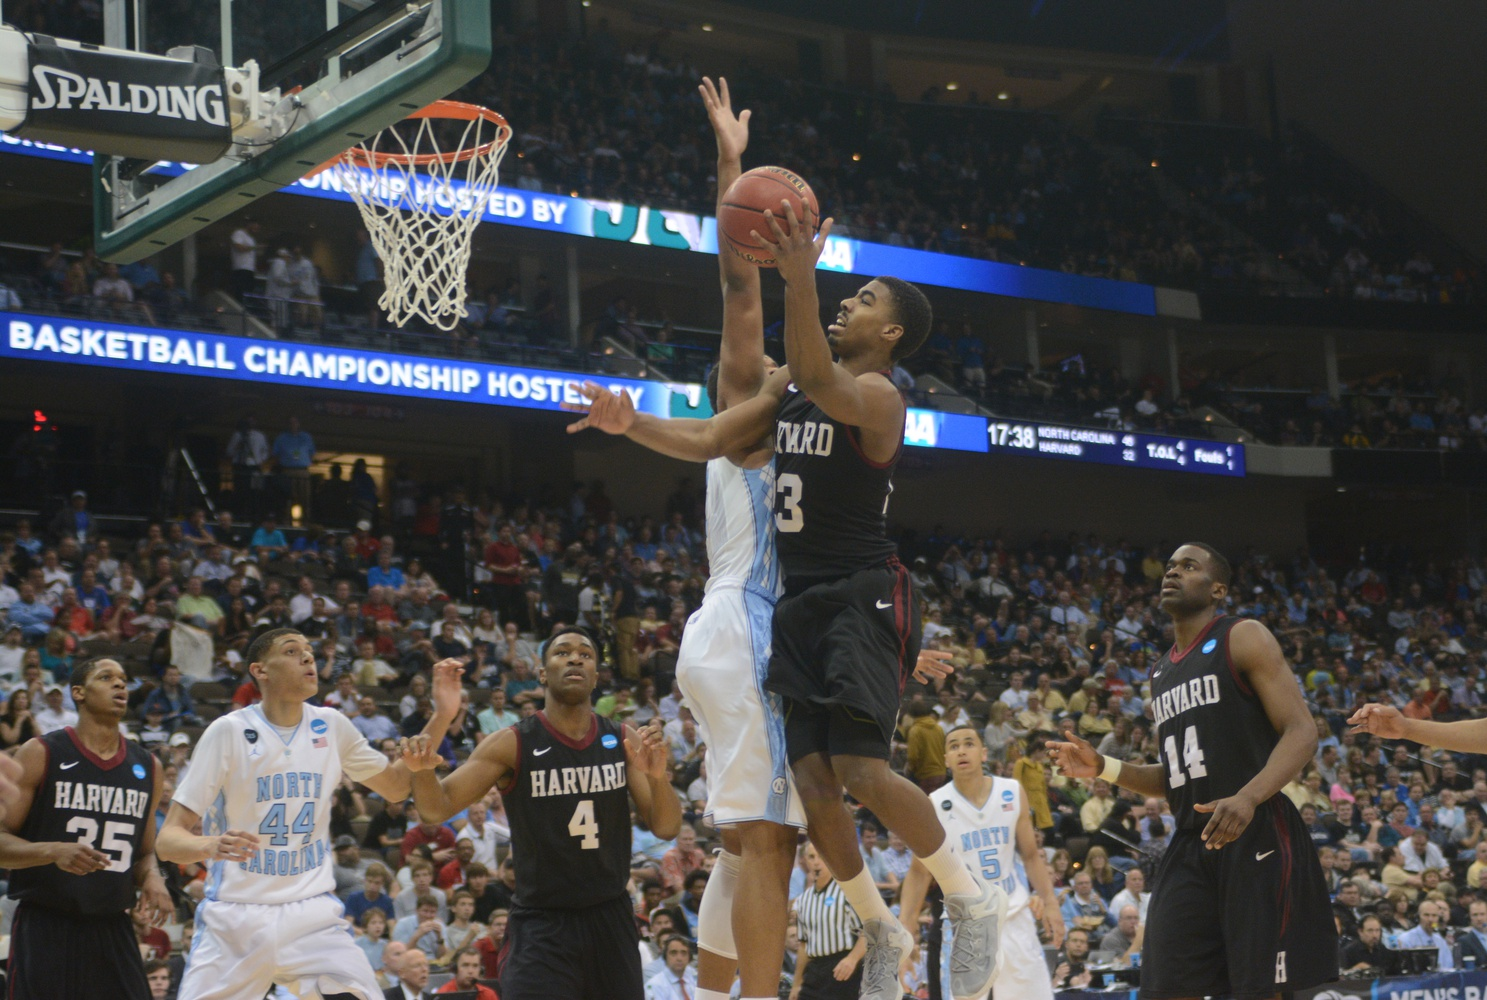 Despite Crimson senior wing Wesley Saunders's 26 points on 8-for-14 shooting, Harvard fell to North Carolina, 67-65.